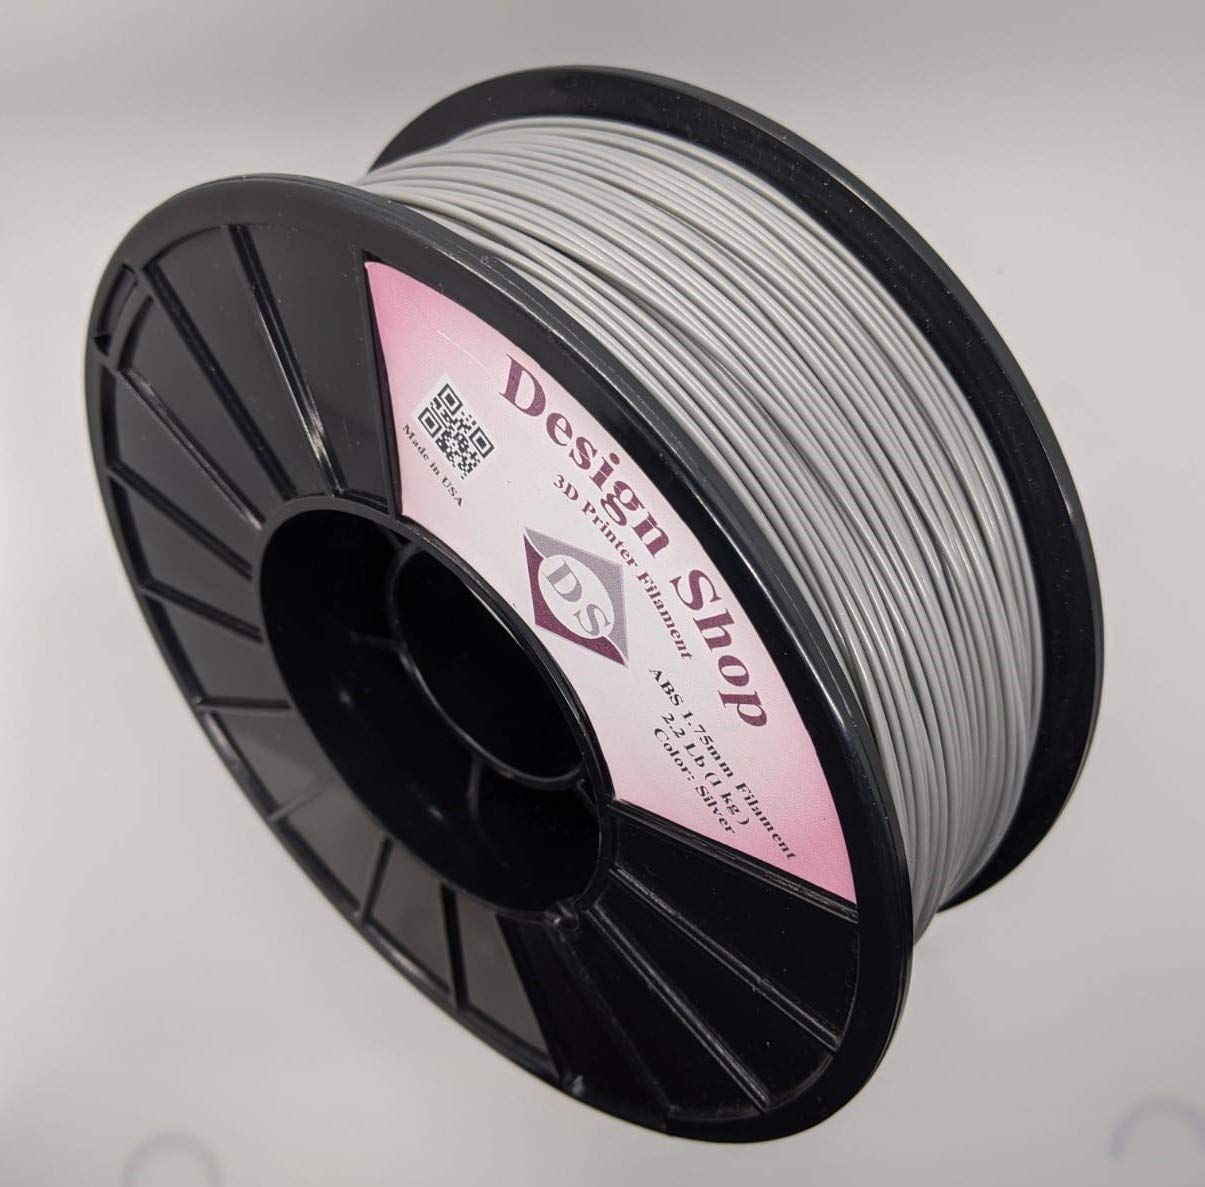 ! Super beauty product restock quality top! 3D ABS Printer Filament 1.75mm Silver - 1Kg USA lbs 100% Direct stock discount 2.2